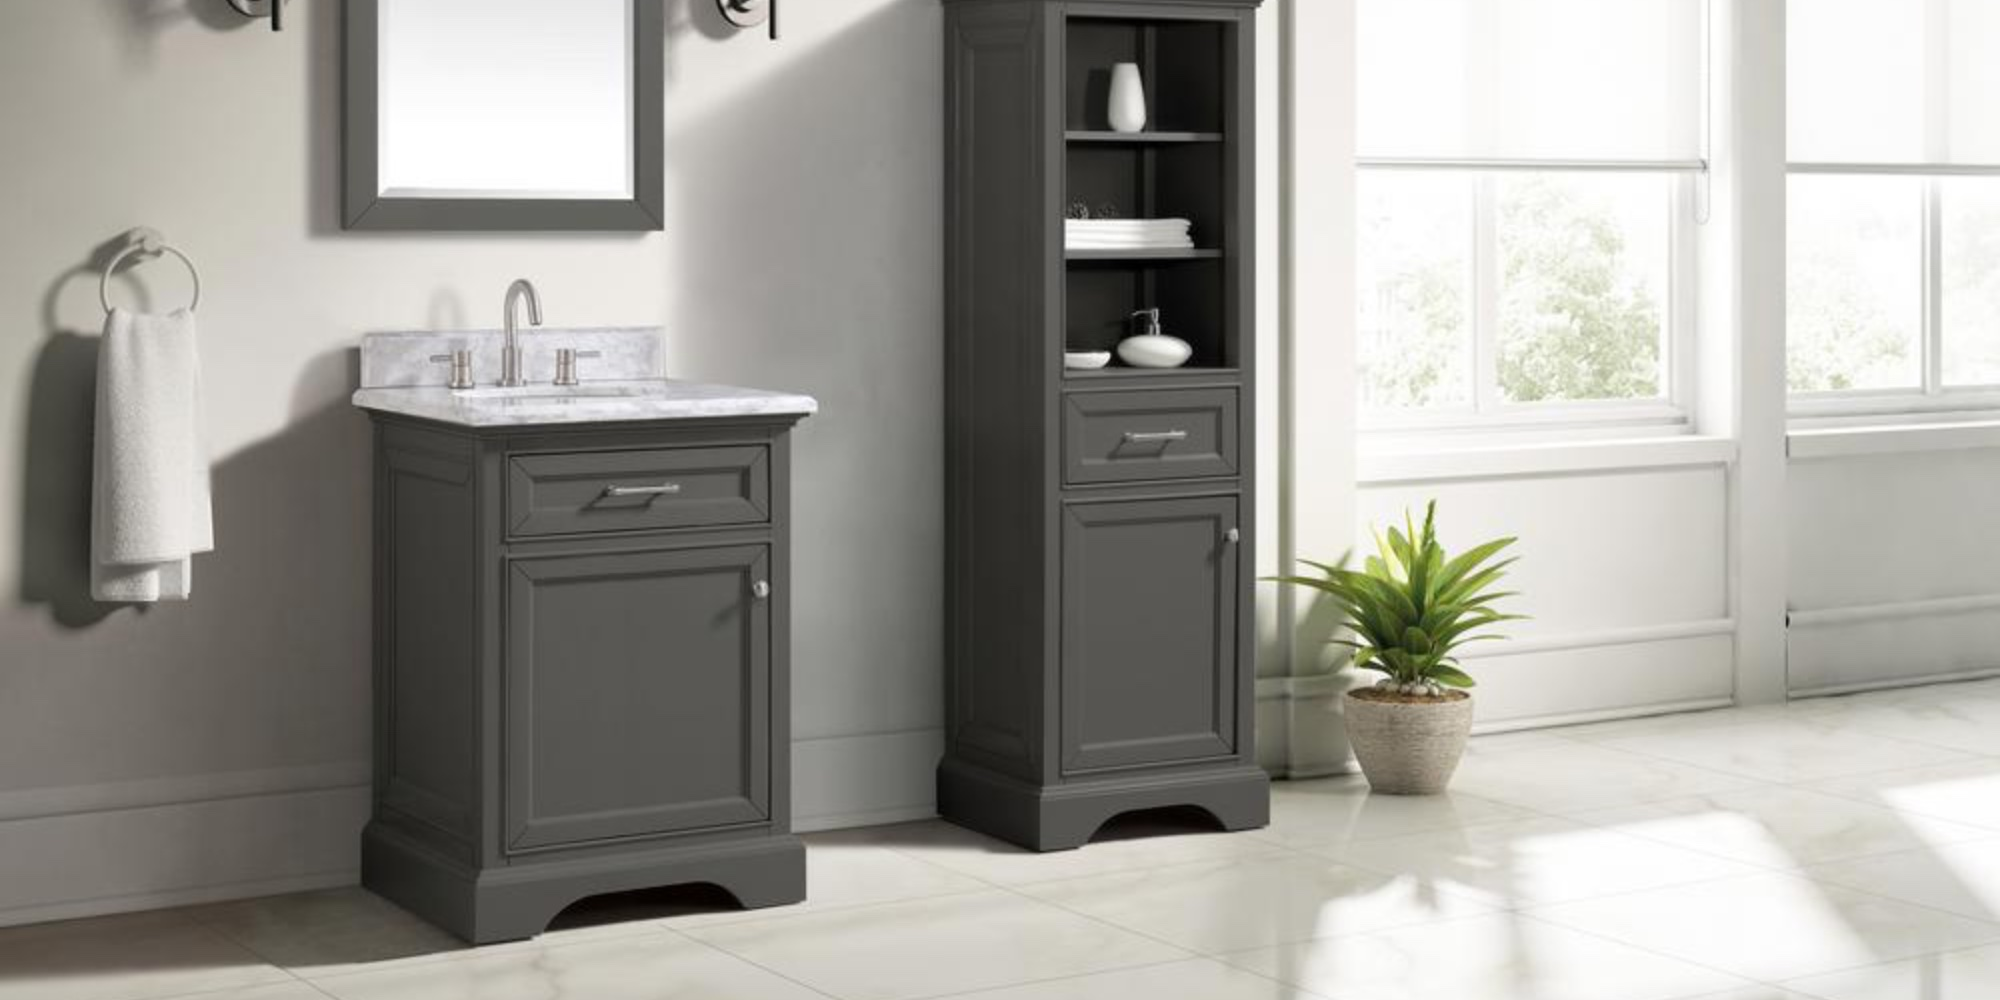 Home Depot Launches 1 Day Bathroom Vanity And Faucet Sale With Up To 30 Off 9to5toys